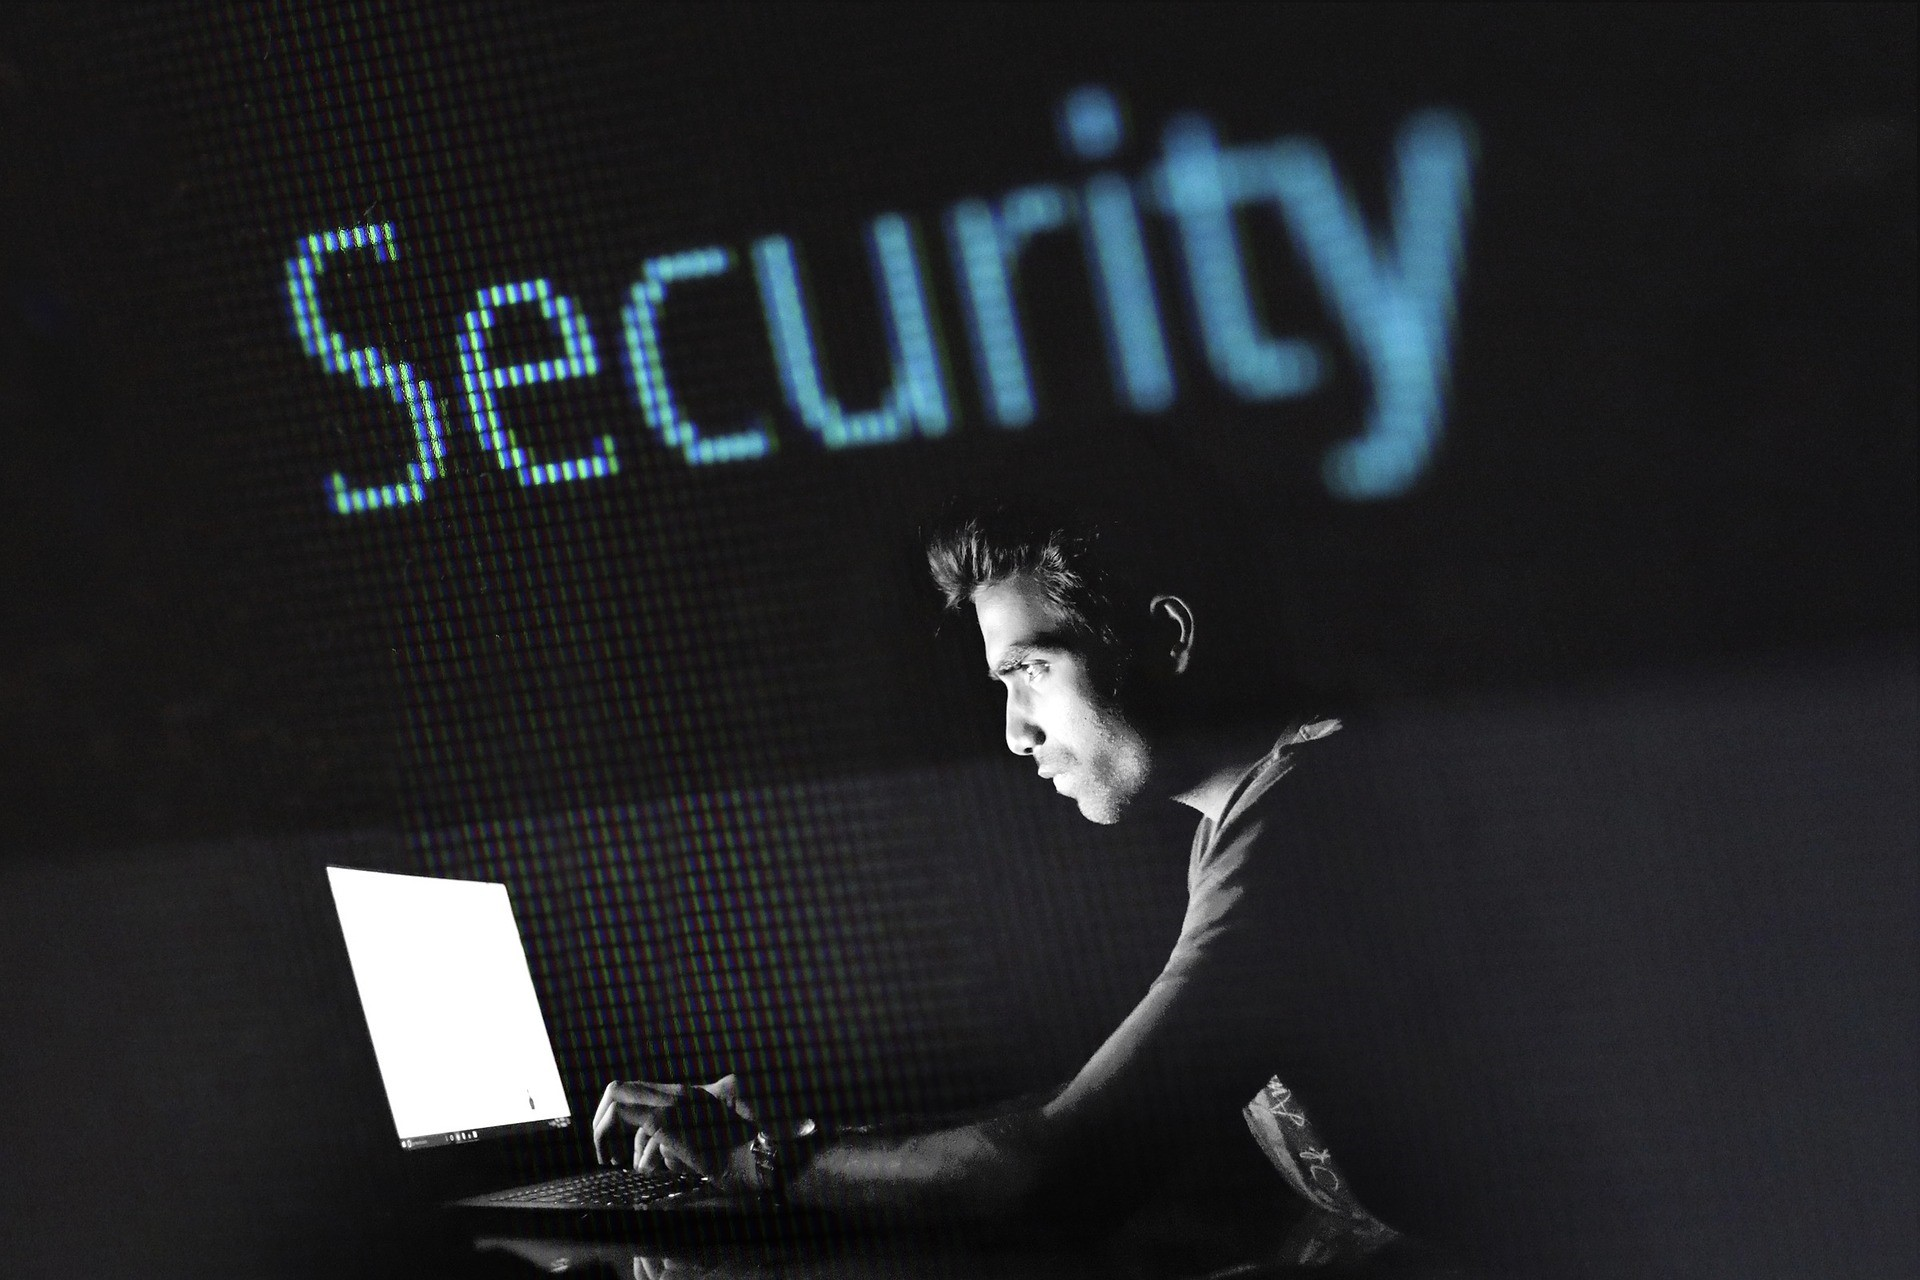 PurpleJelly provide IT cyber security support in farnham surrey